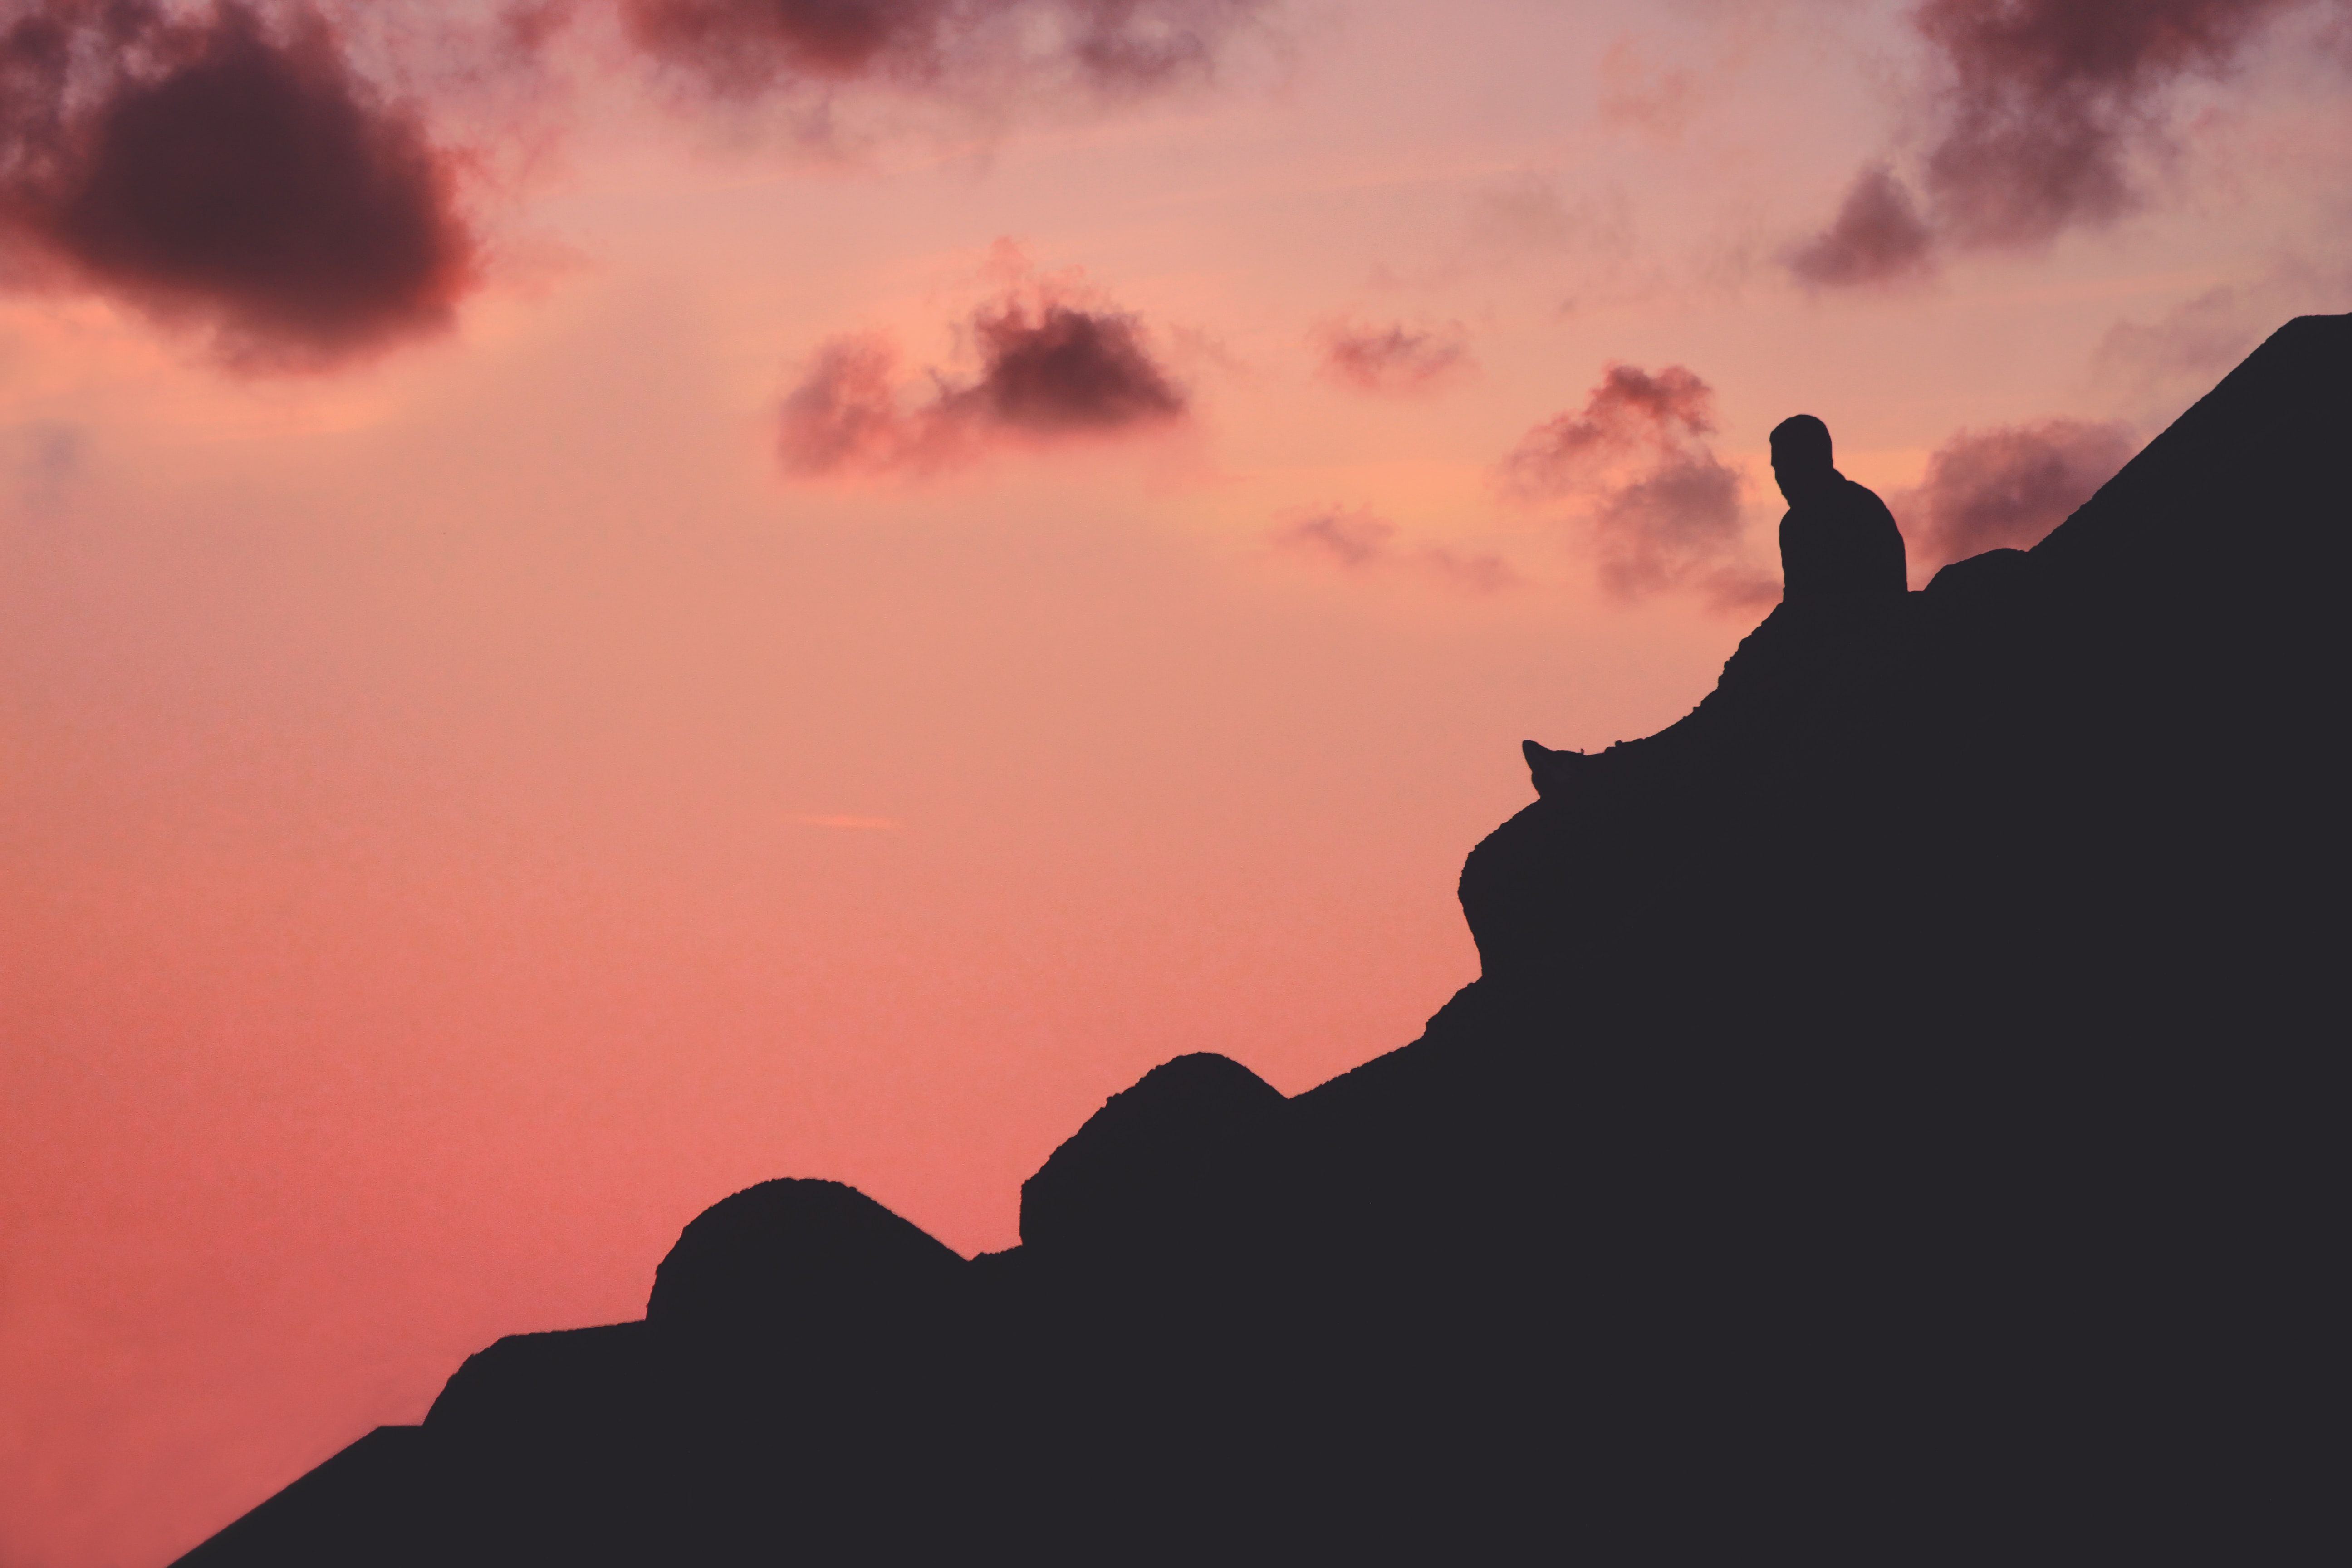 silhouette of man sitting on cliff